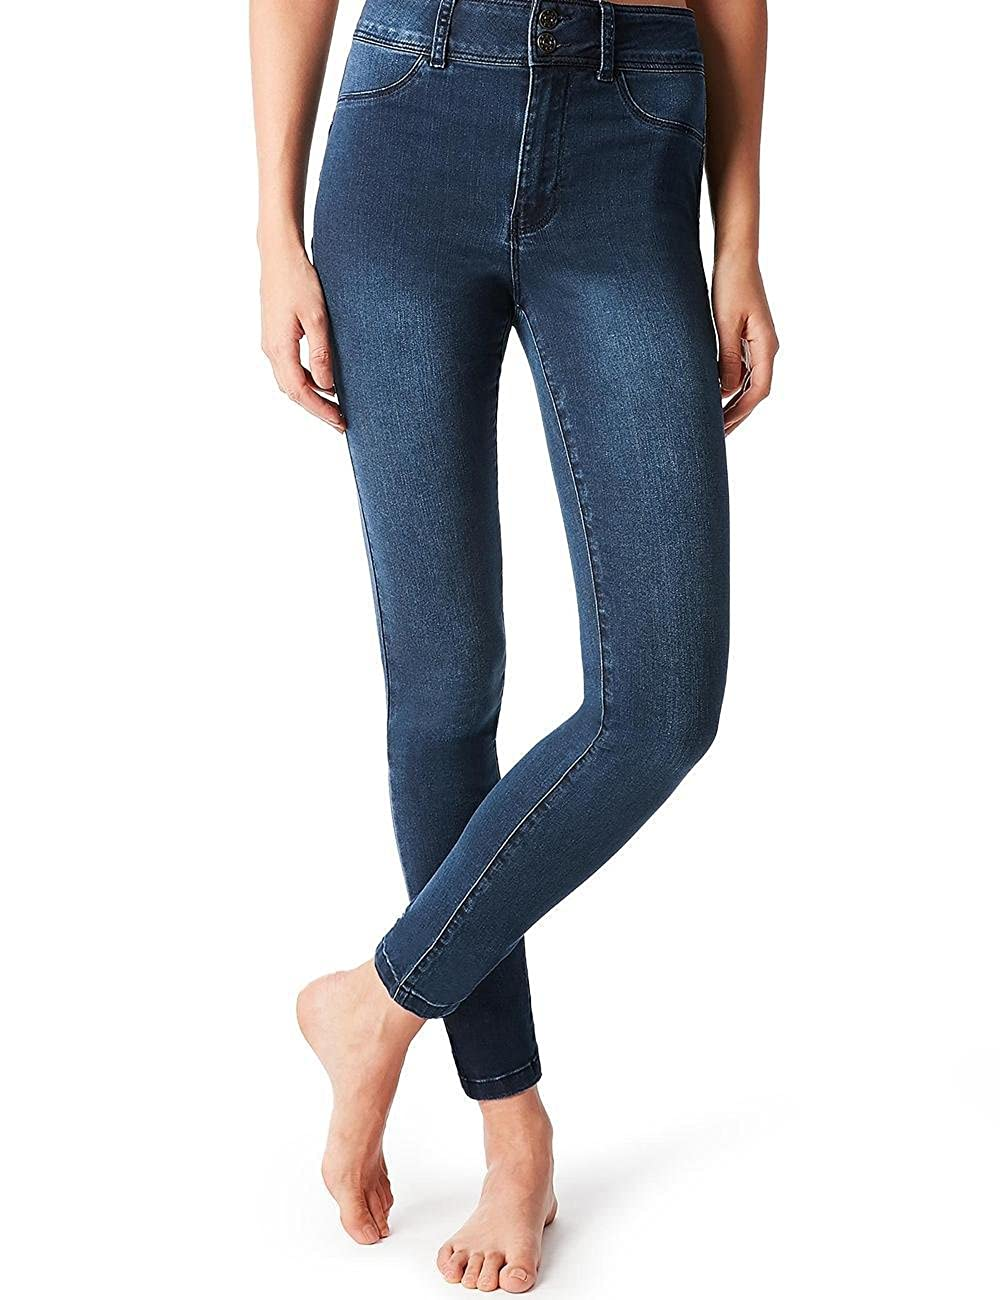 speciale per scarpa miglior valore stile attraente Calzedonia Womens High-Waisted Push-Up Jeans: Amazon.co.uk ...